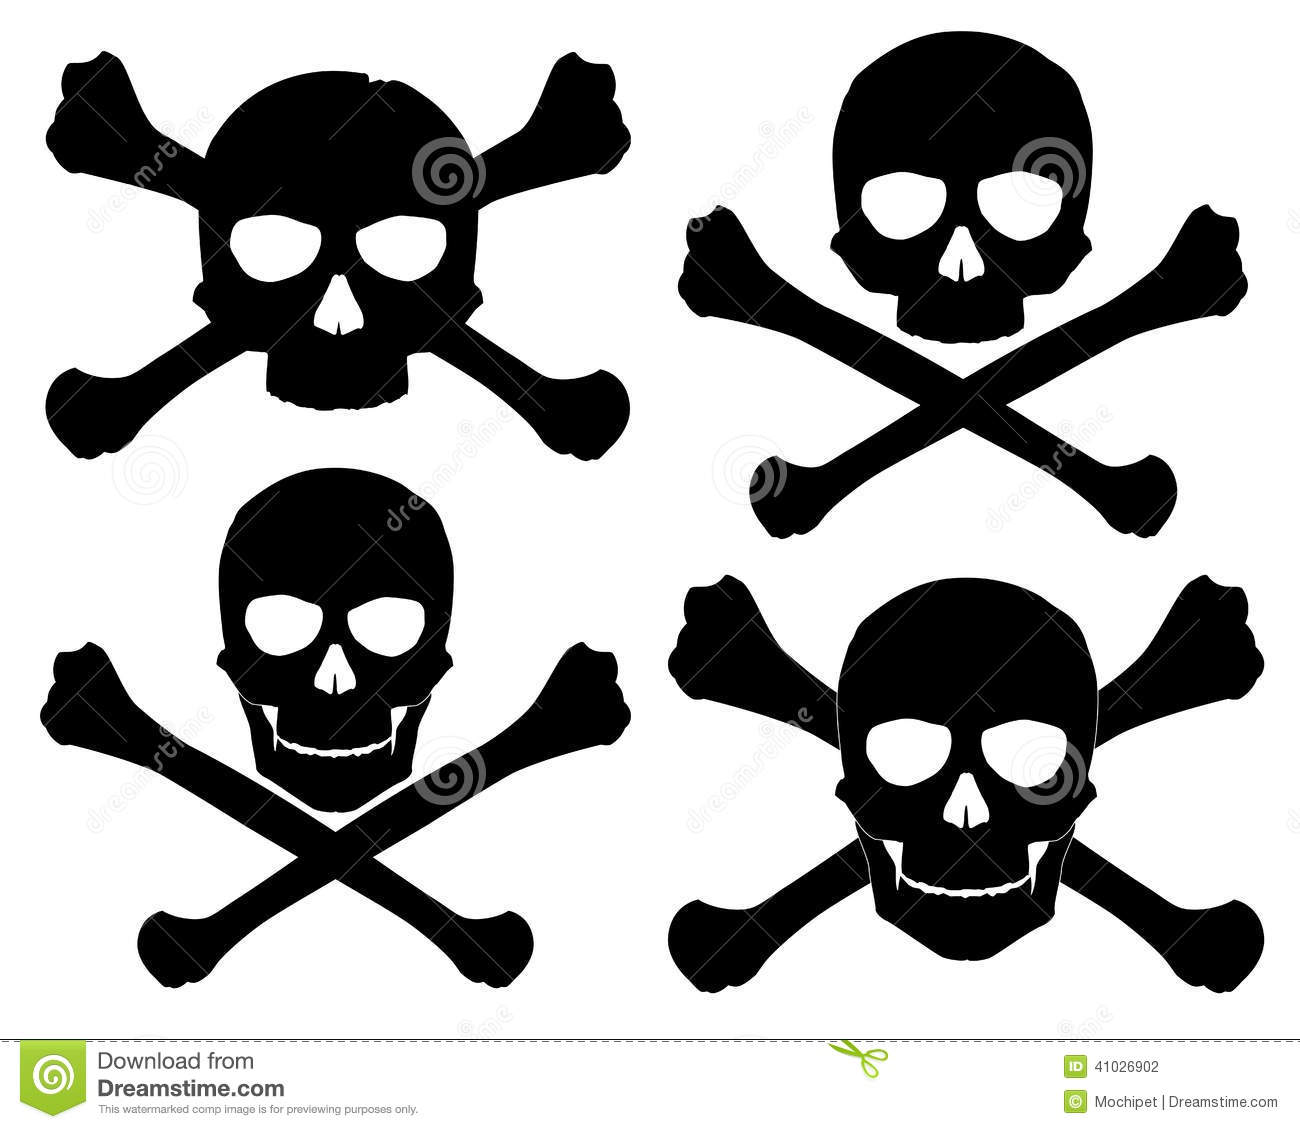 Stock Illustration Silhouette Jolly Roger Vector Illustration Image41026902 on Free Printable Pirate Coloring Pages